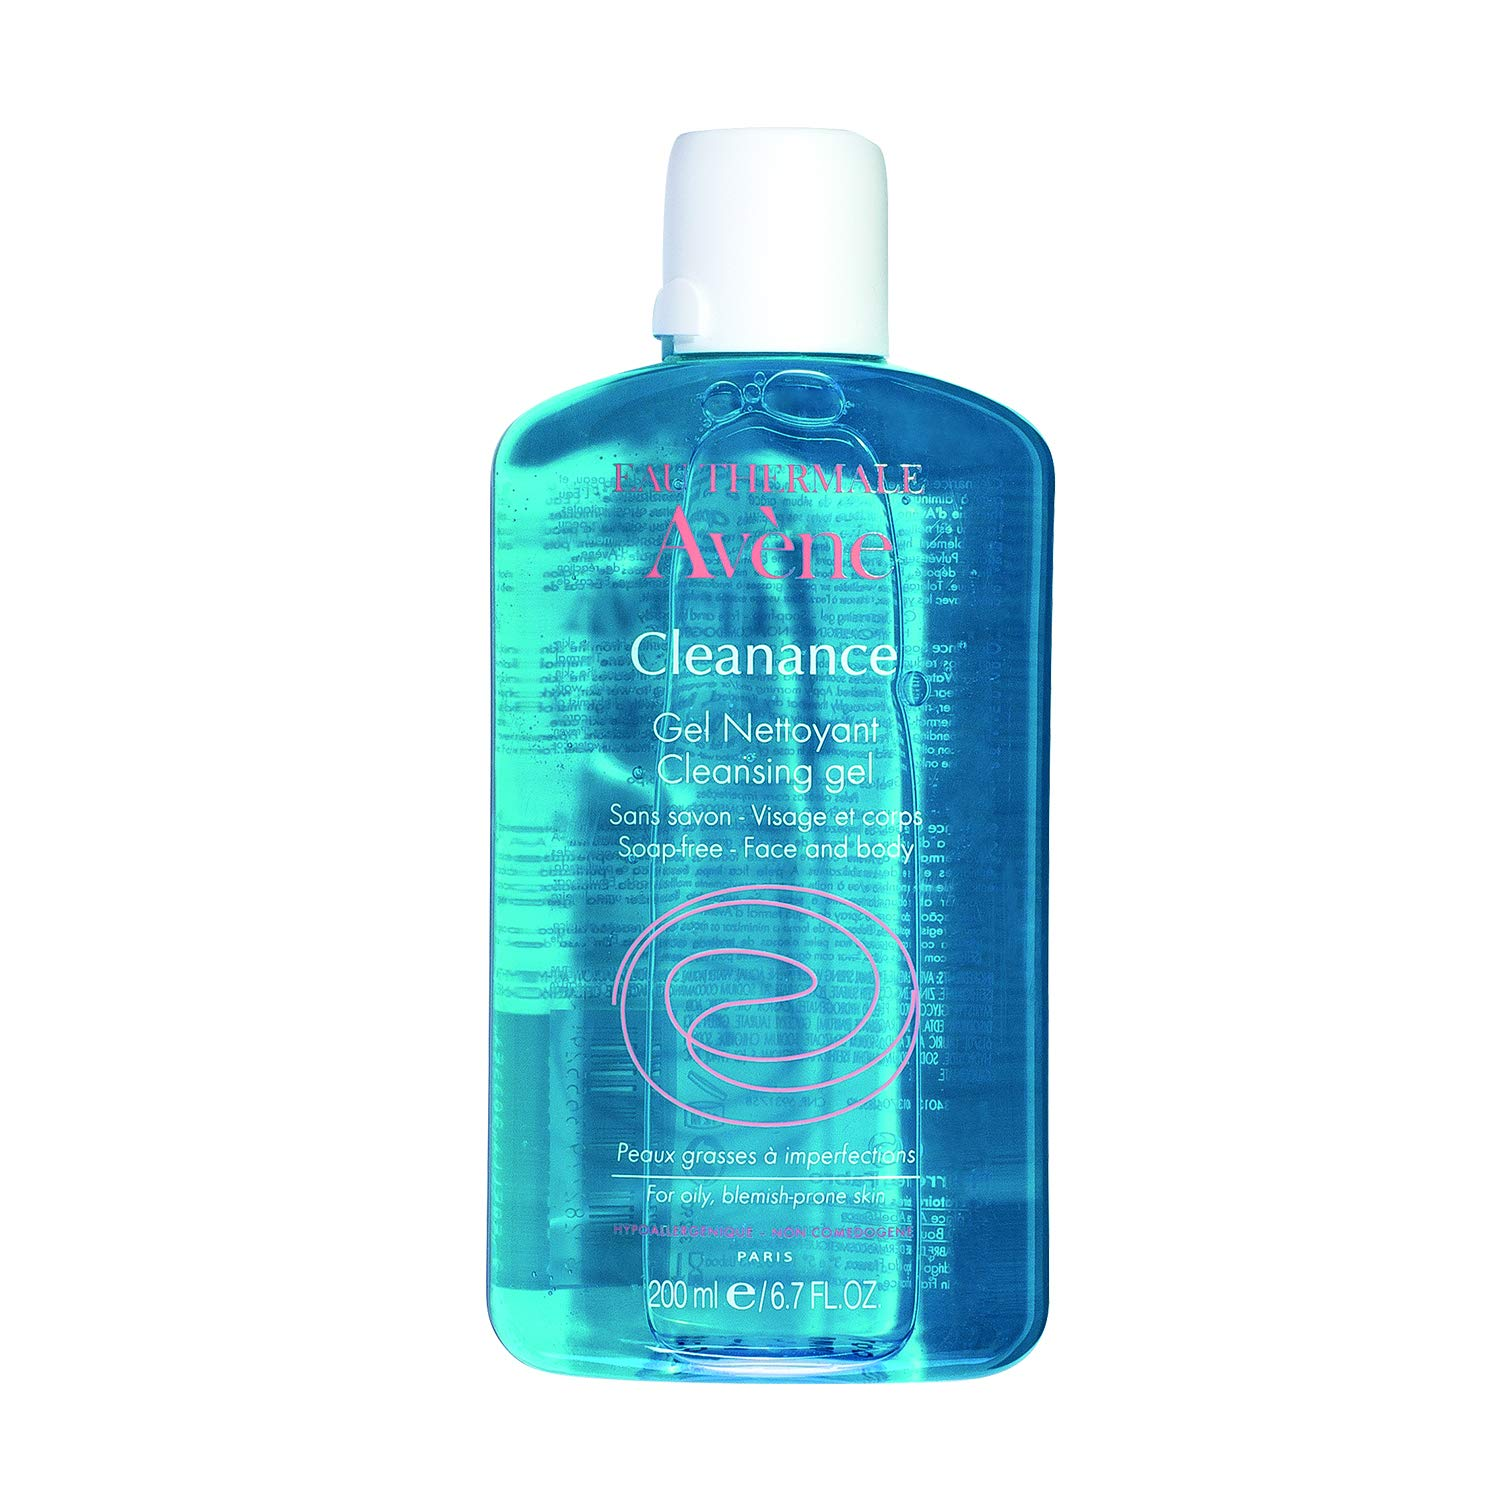 Avene Clearance Gel (Price – Rs. 790)